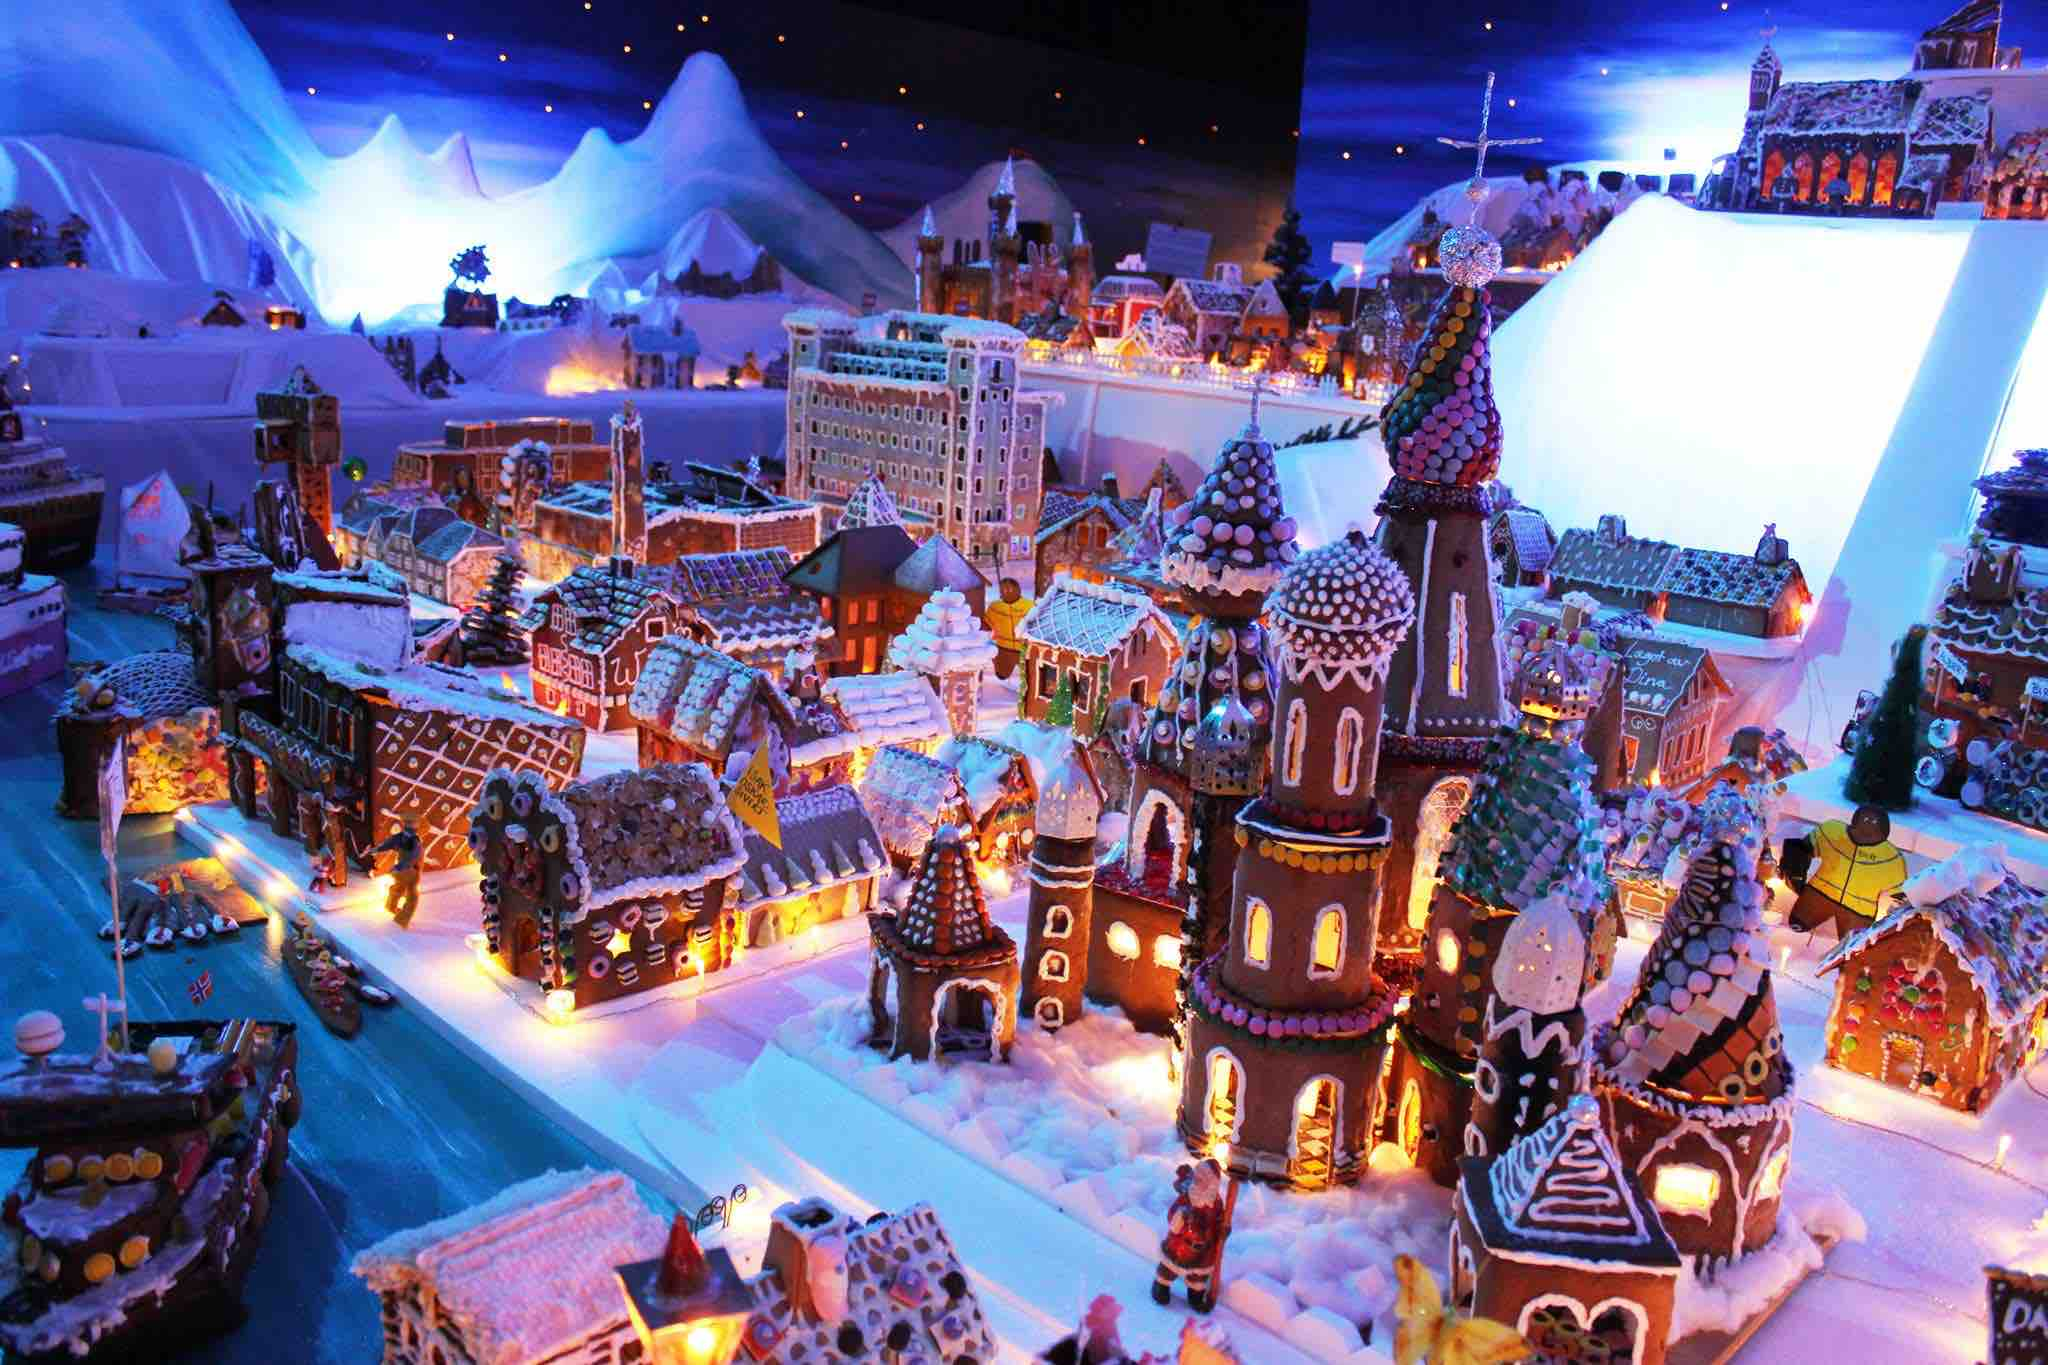 Worlds largest gingerbread town